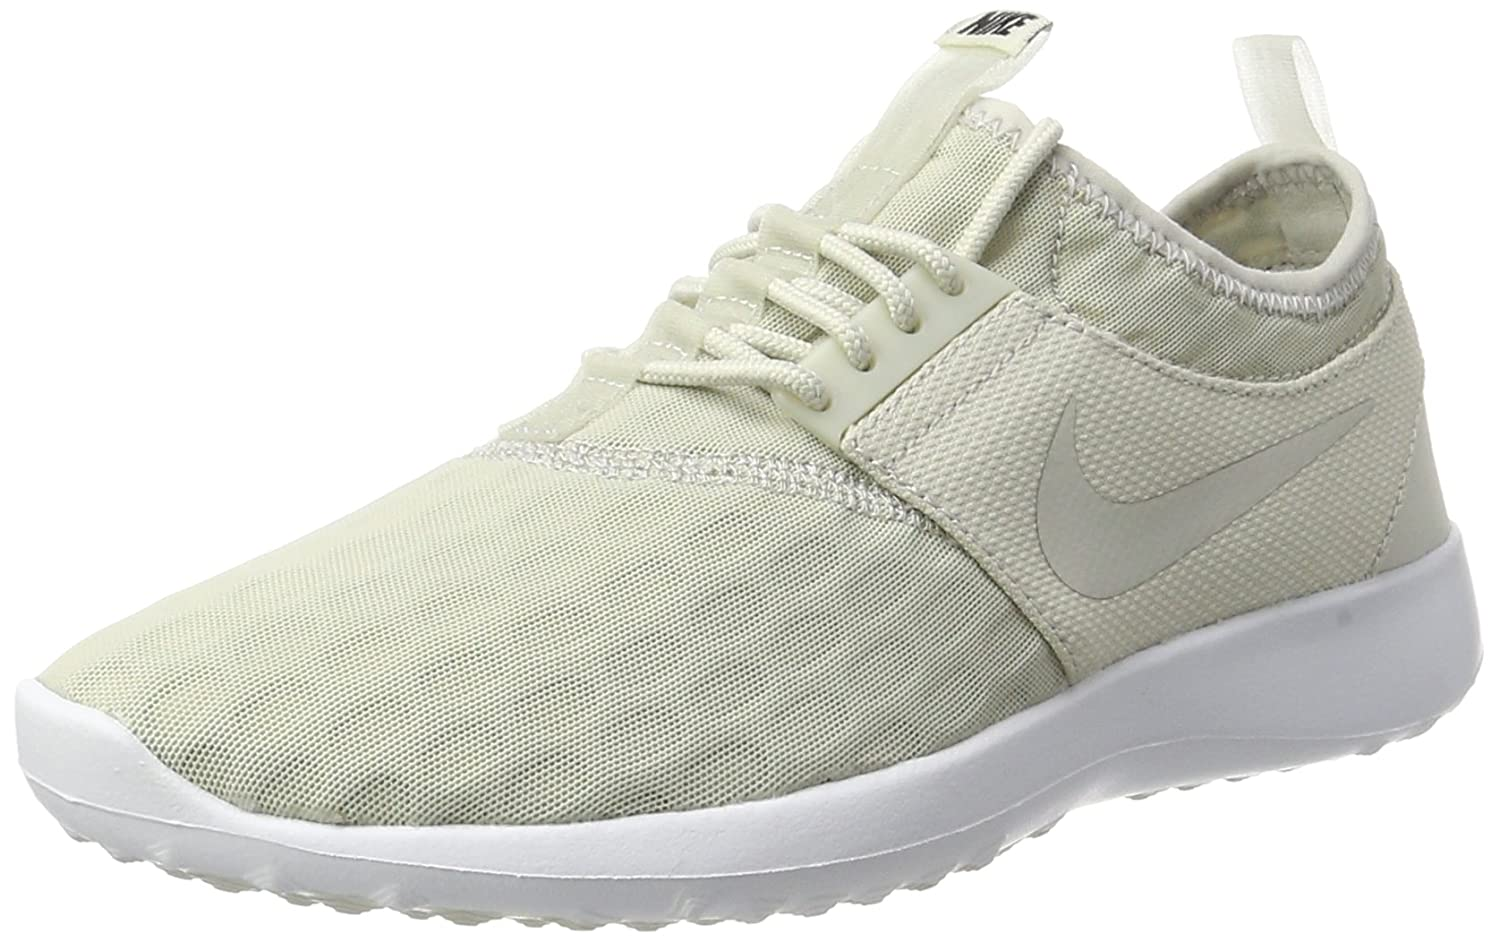 NIKE Women's Juvenate Running Shoe B071XVJ8CL 6 B(M) US|Light Bone/Light Bone/Black/White